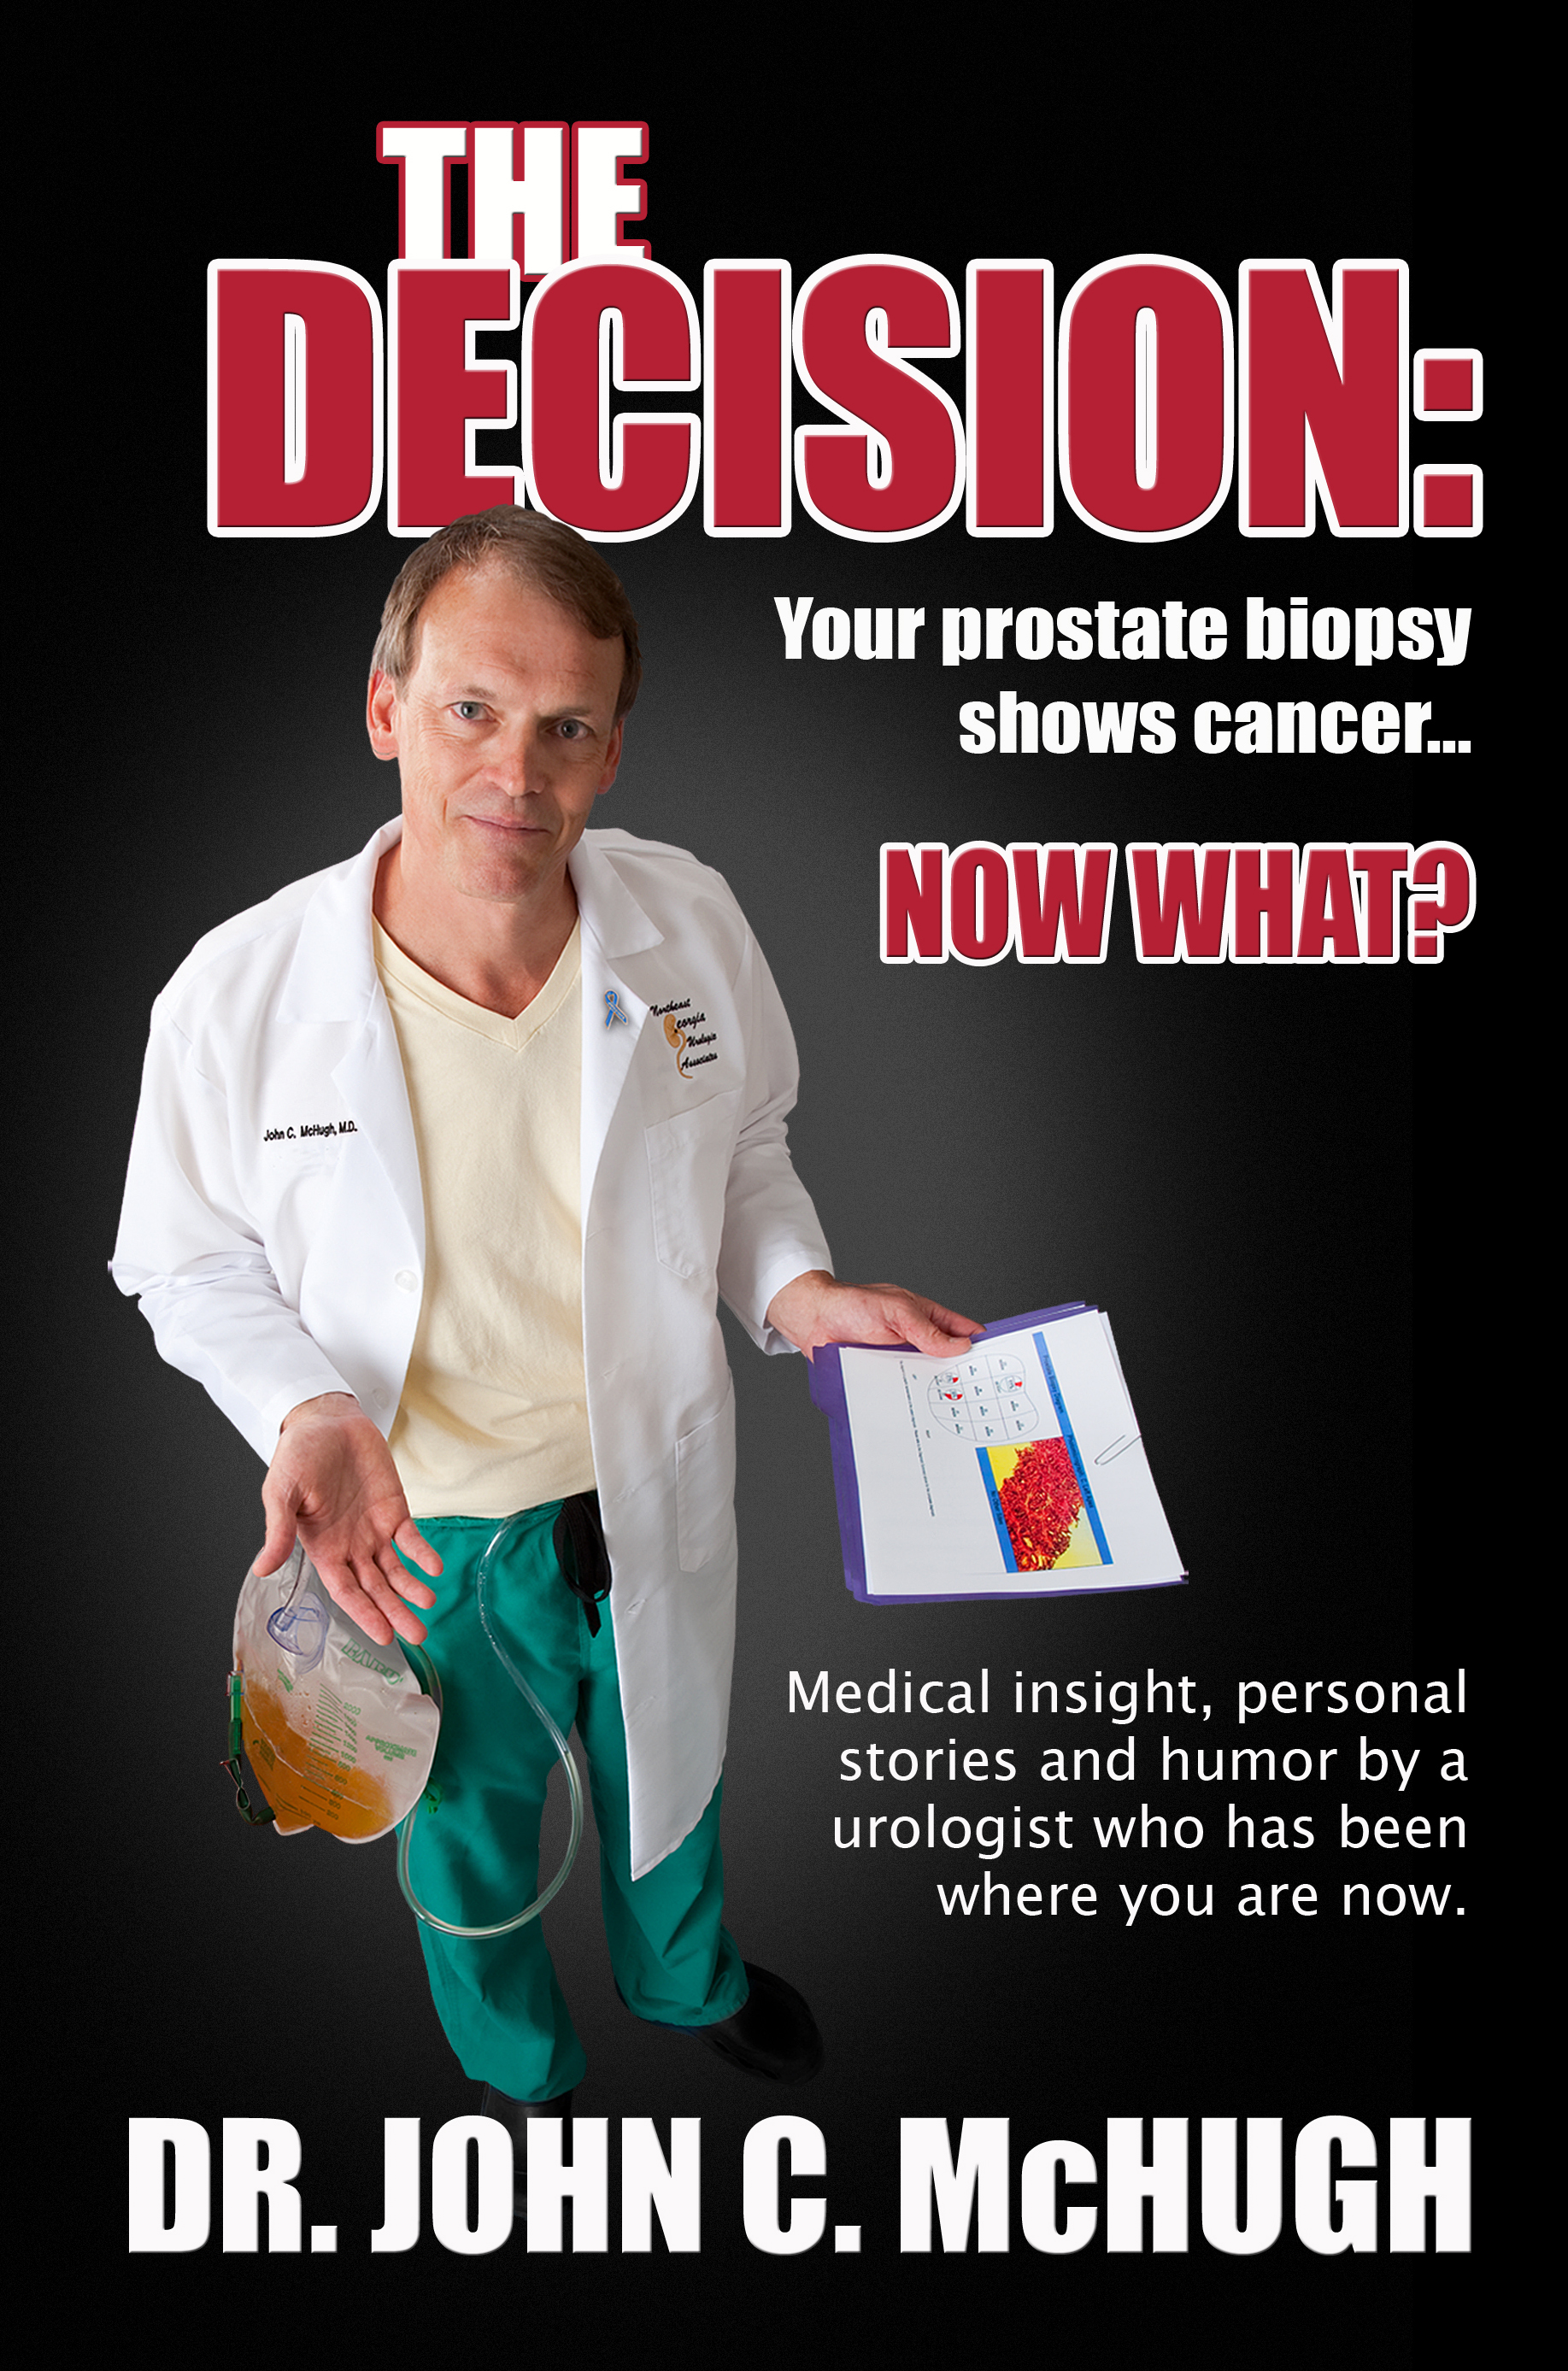 Urologist with his own disease-His loss (the prostate) is your gain.